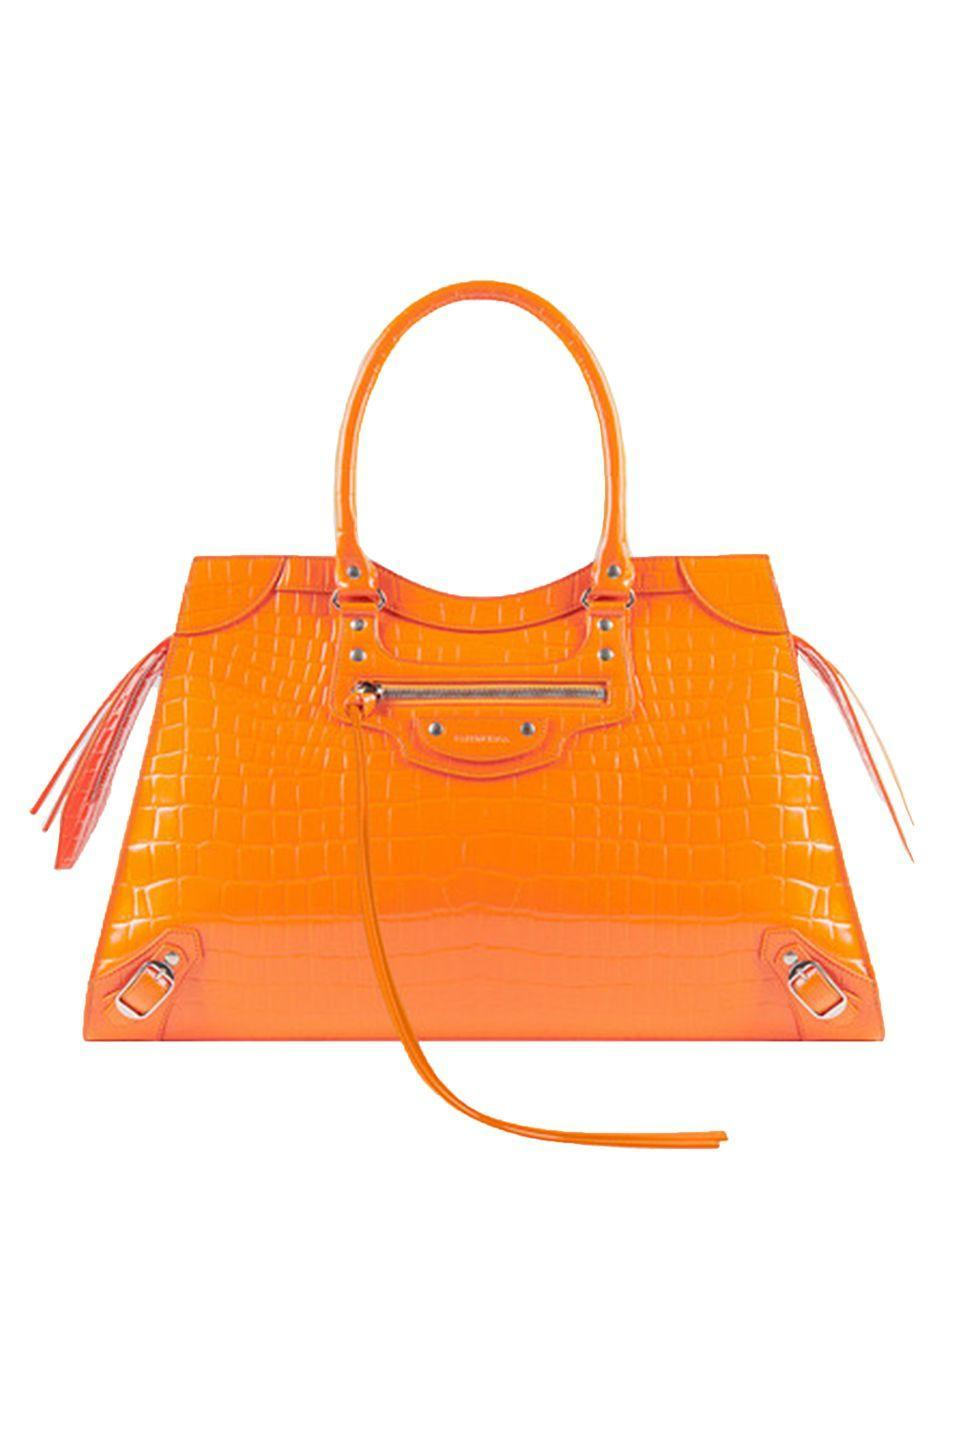 "<p>Balenciaga's Classic city bag turns twenty this year, a testament to its enduring style. To celebrate, Balenciaga traded in its tabloid-friendly slouchy shape once loved by Kate Moss for a more structured body. True to Demna Gvasalia's futuristic eye, the New Classic is being released in a croc-embossed neon orange that feels more 2020 than 2000. </p><p><em>Balenciaga, $2,490; balenciaga.com</em></p><p><a class=""link rapid-noclick-resp"" href=""https://go.redirectingat.com?id=74968X1596630&url=https%3A%2F%2Fwww.balenciaga.com%2Fus%2Fneo-classic-handbags_cod22009233gp.html%23%2Fus%2Fwomen%2Fneo-classic-women&sref=https%3A%2F%2Fwww.elle.com%2Ffashion%2Fshopping%2Fg33416567%2Fdesigner-it-bags-pre-fall-2021%2F"" rel=""nofollow noopener"" target=""_blank"" data-ylk=""slk:SHOP NOW"">SHOP NOW</a></p>"